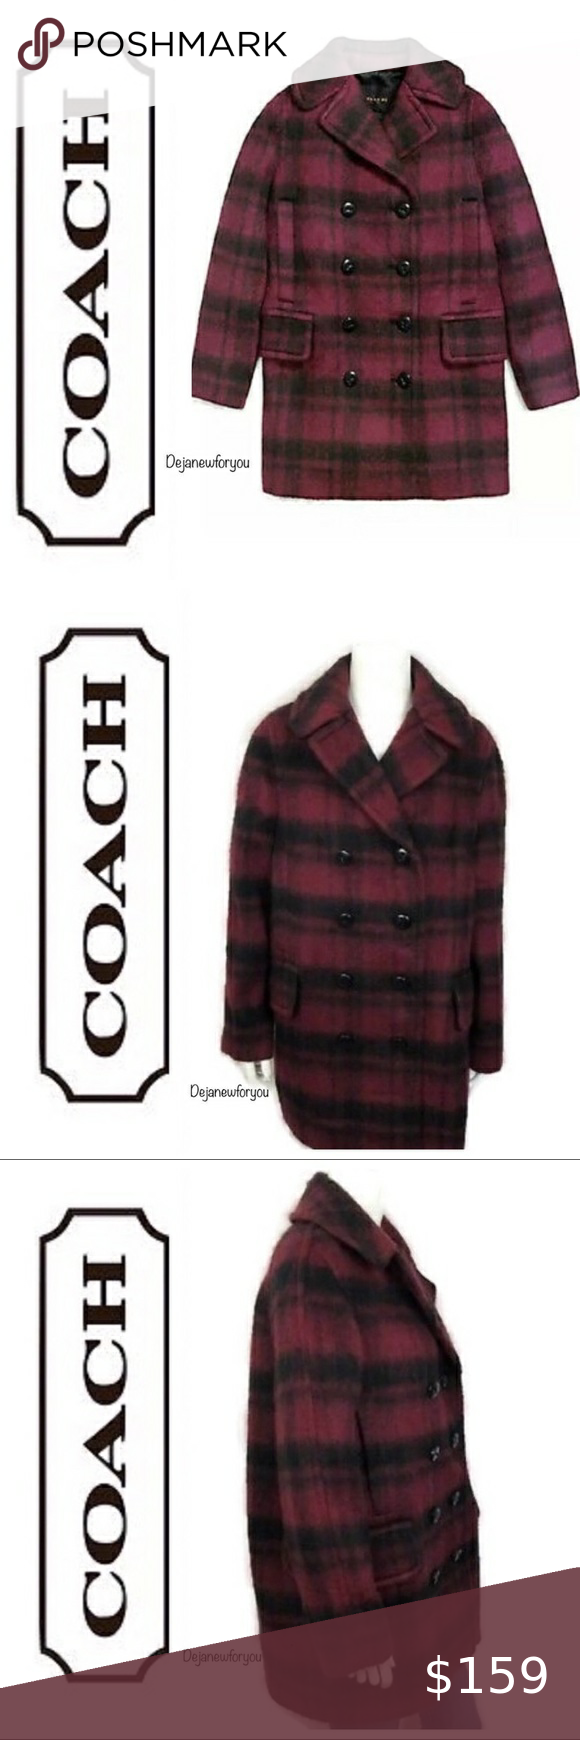 Coach Plaid Cranberry Wool Pea Coat